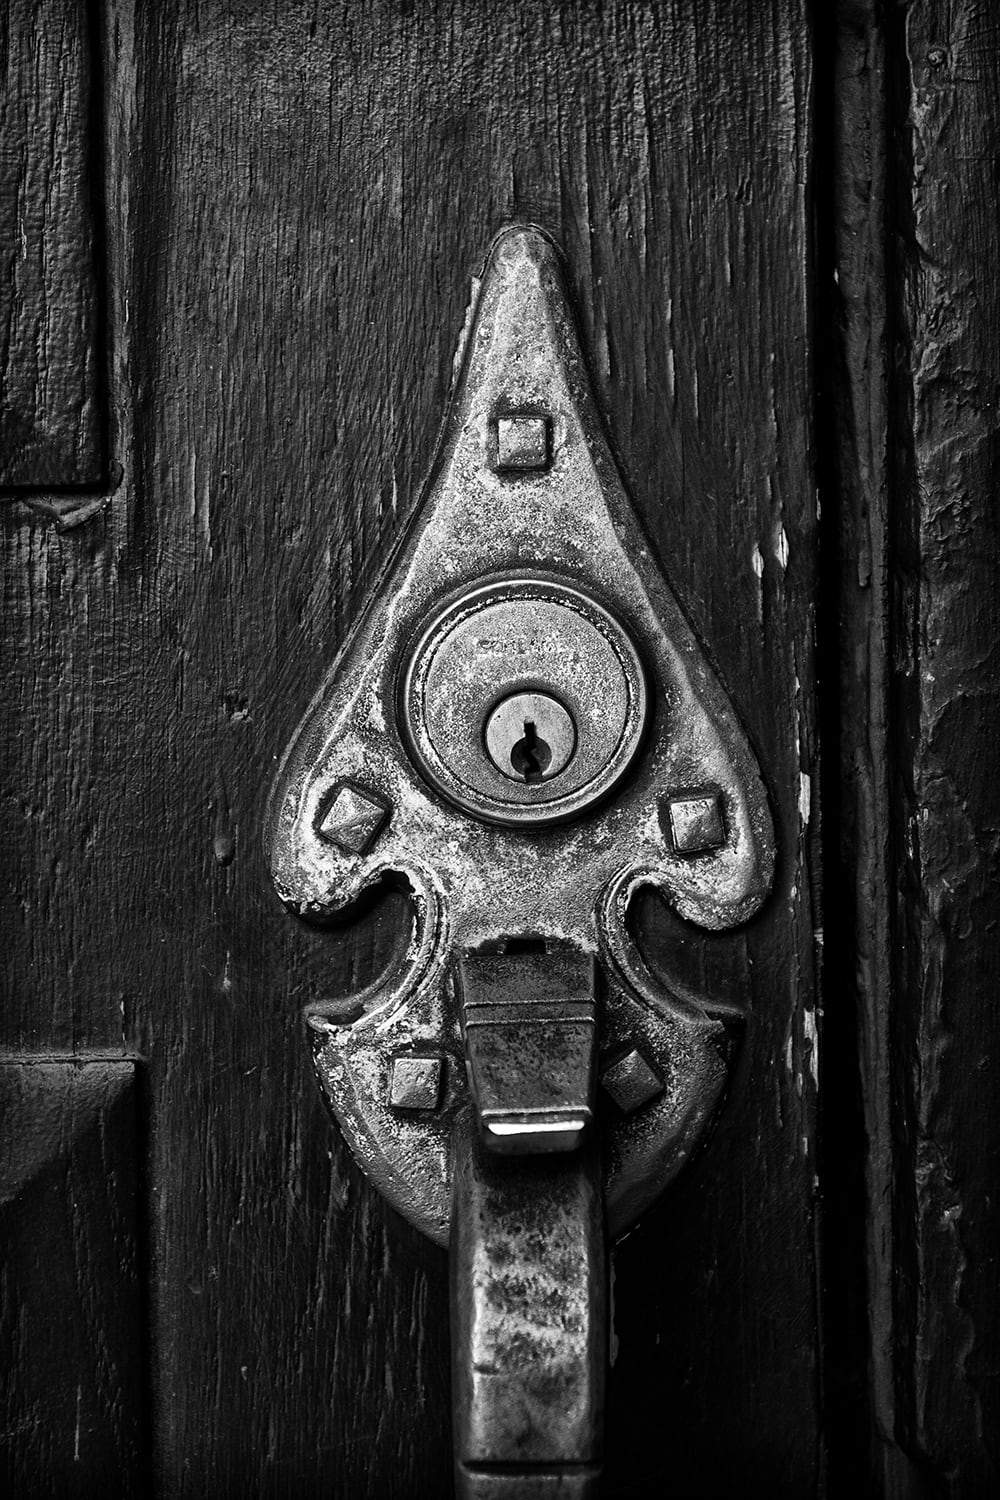 Black and white architectural detail photograph of an old brass door handle on a textured black door in Madison, Wisconsin. Buy a fine art print here.